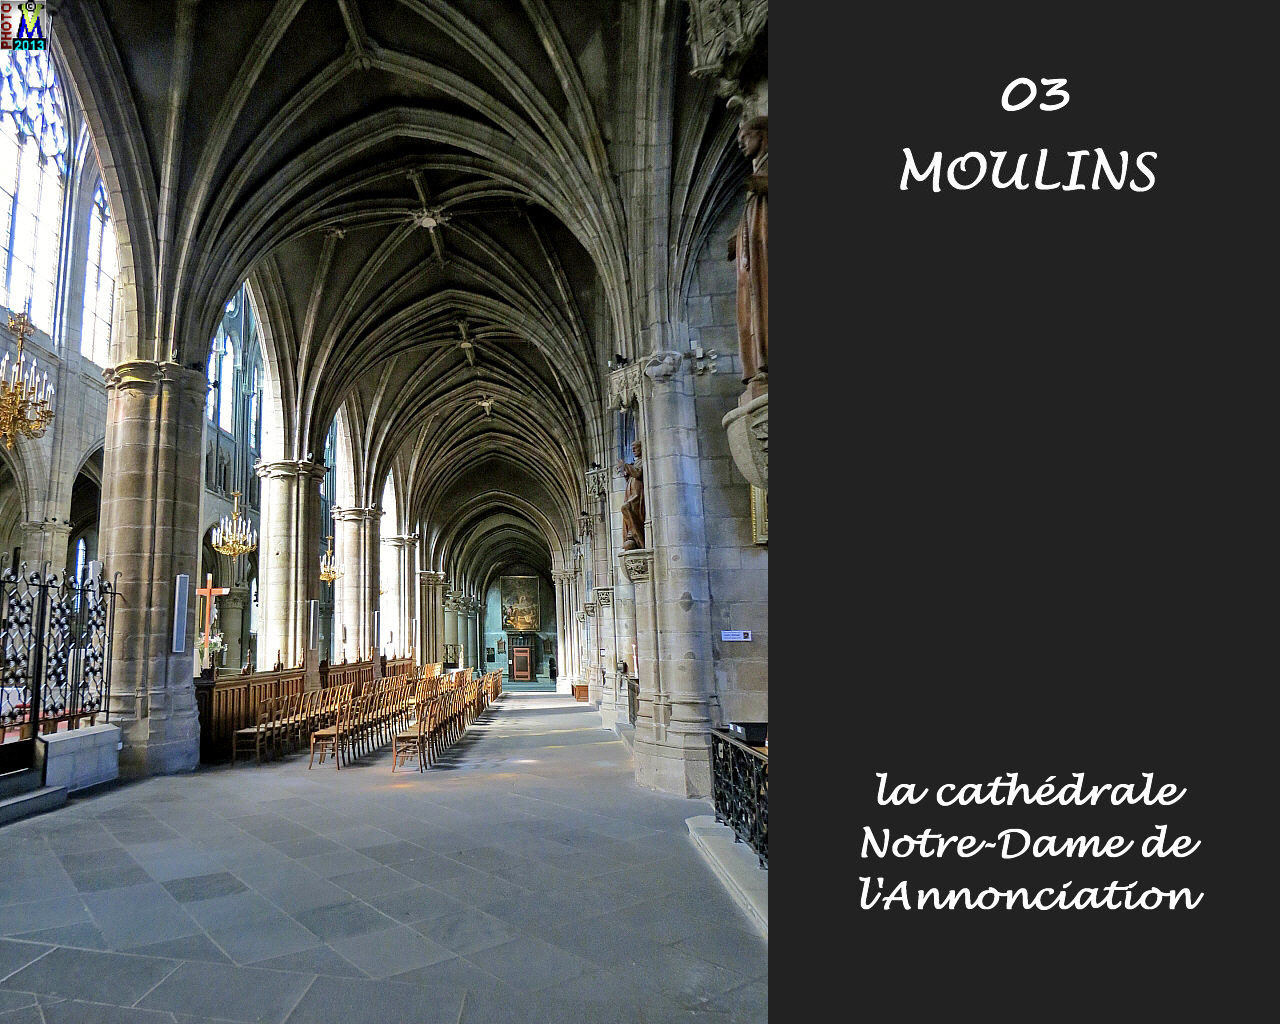 03MOULINS_cathedrale_206.jpg